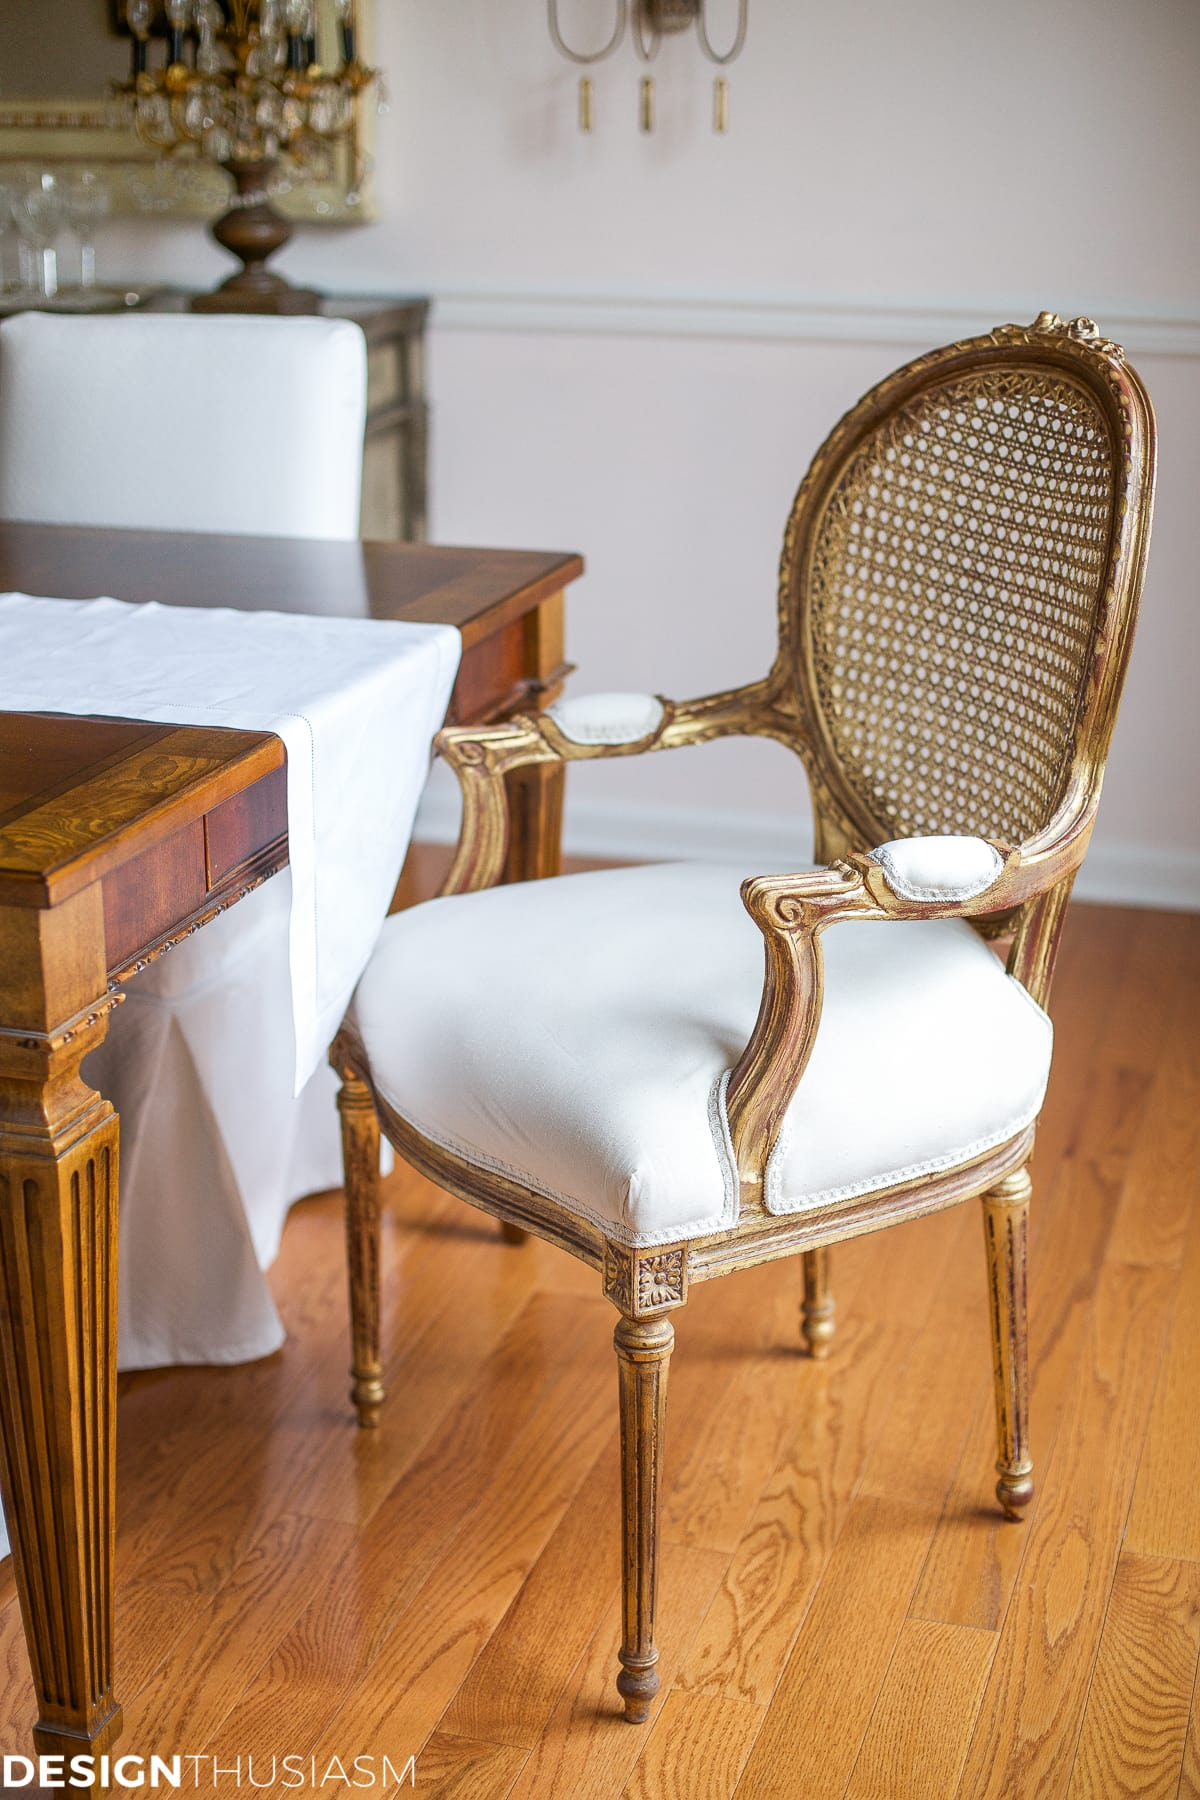 Dining Room Accessories | 3 Updates That Make a Huge Difference - designthusiasm.com